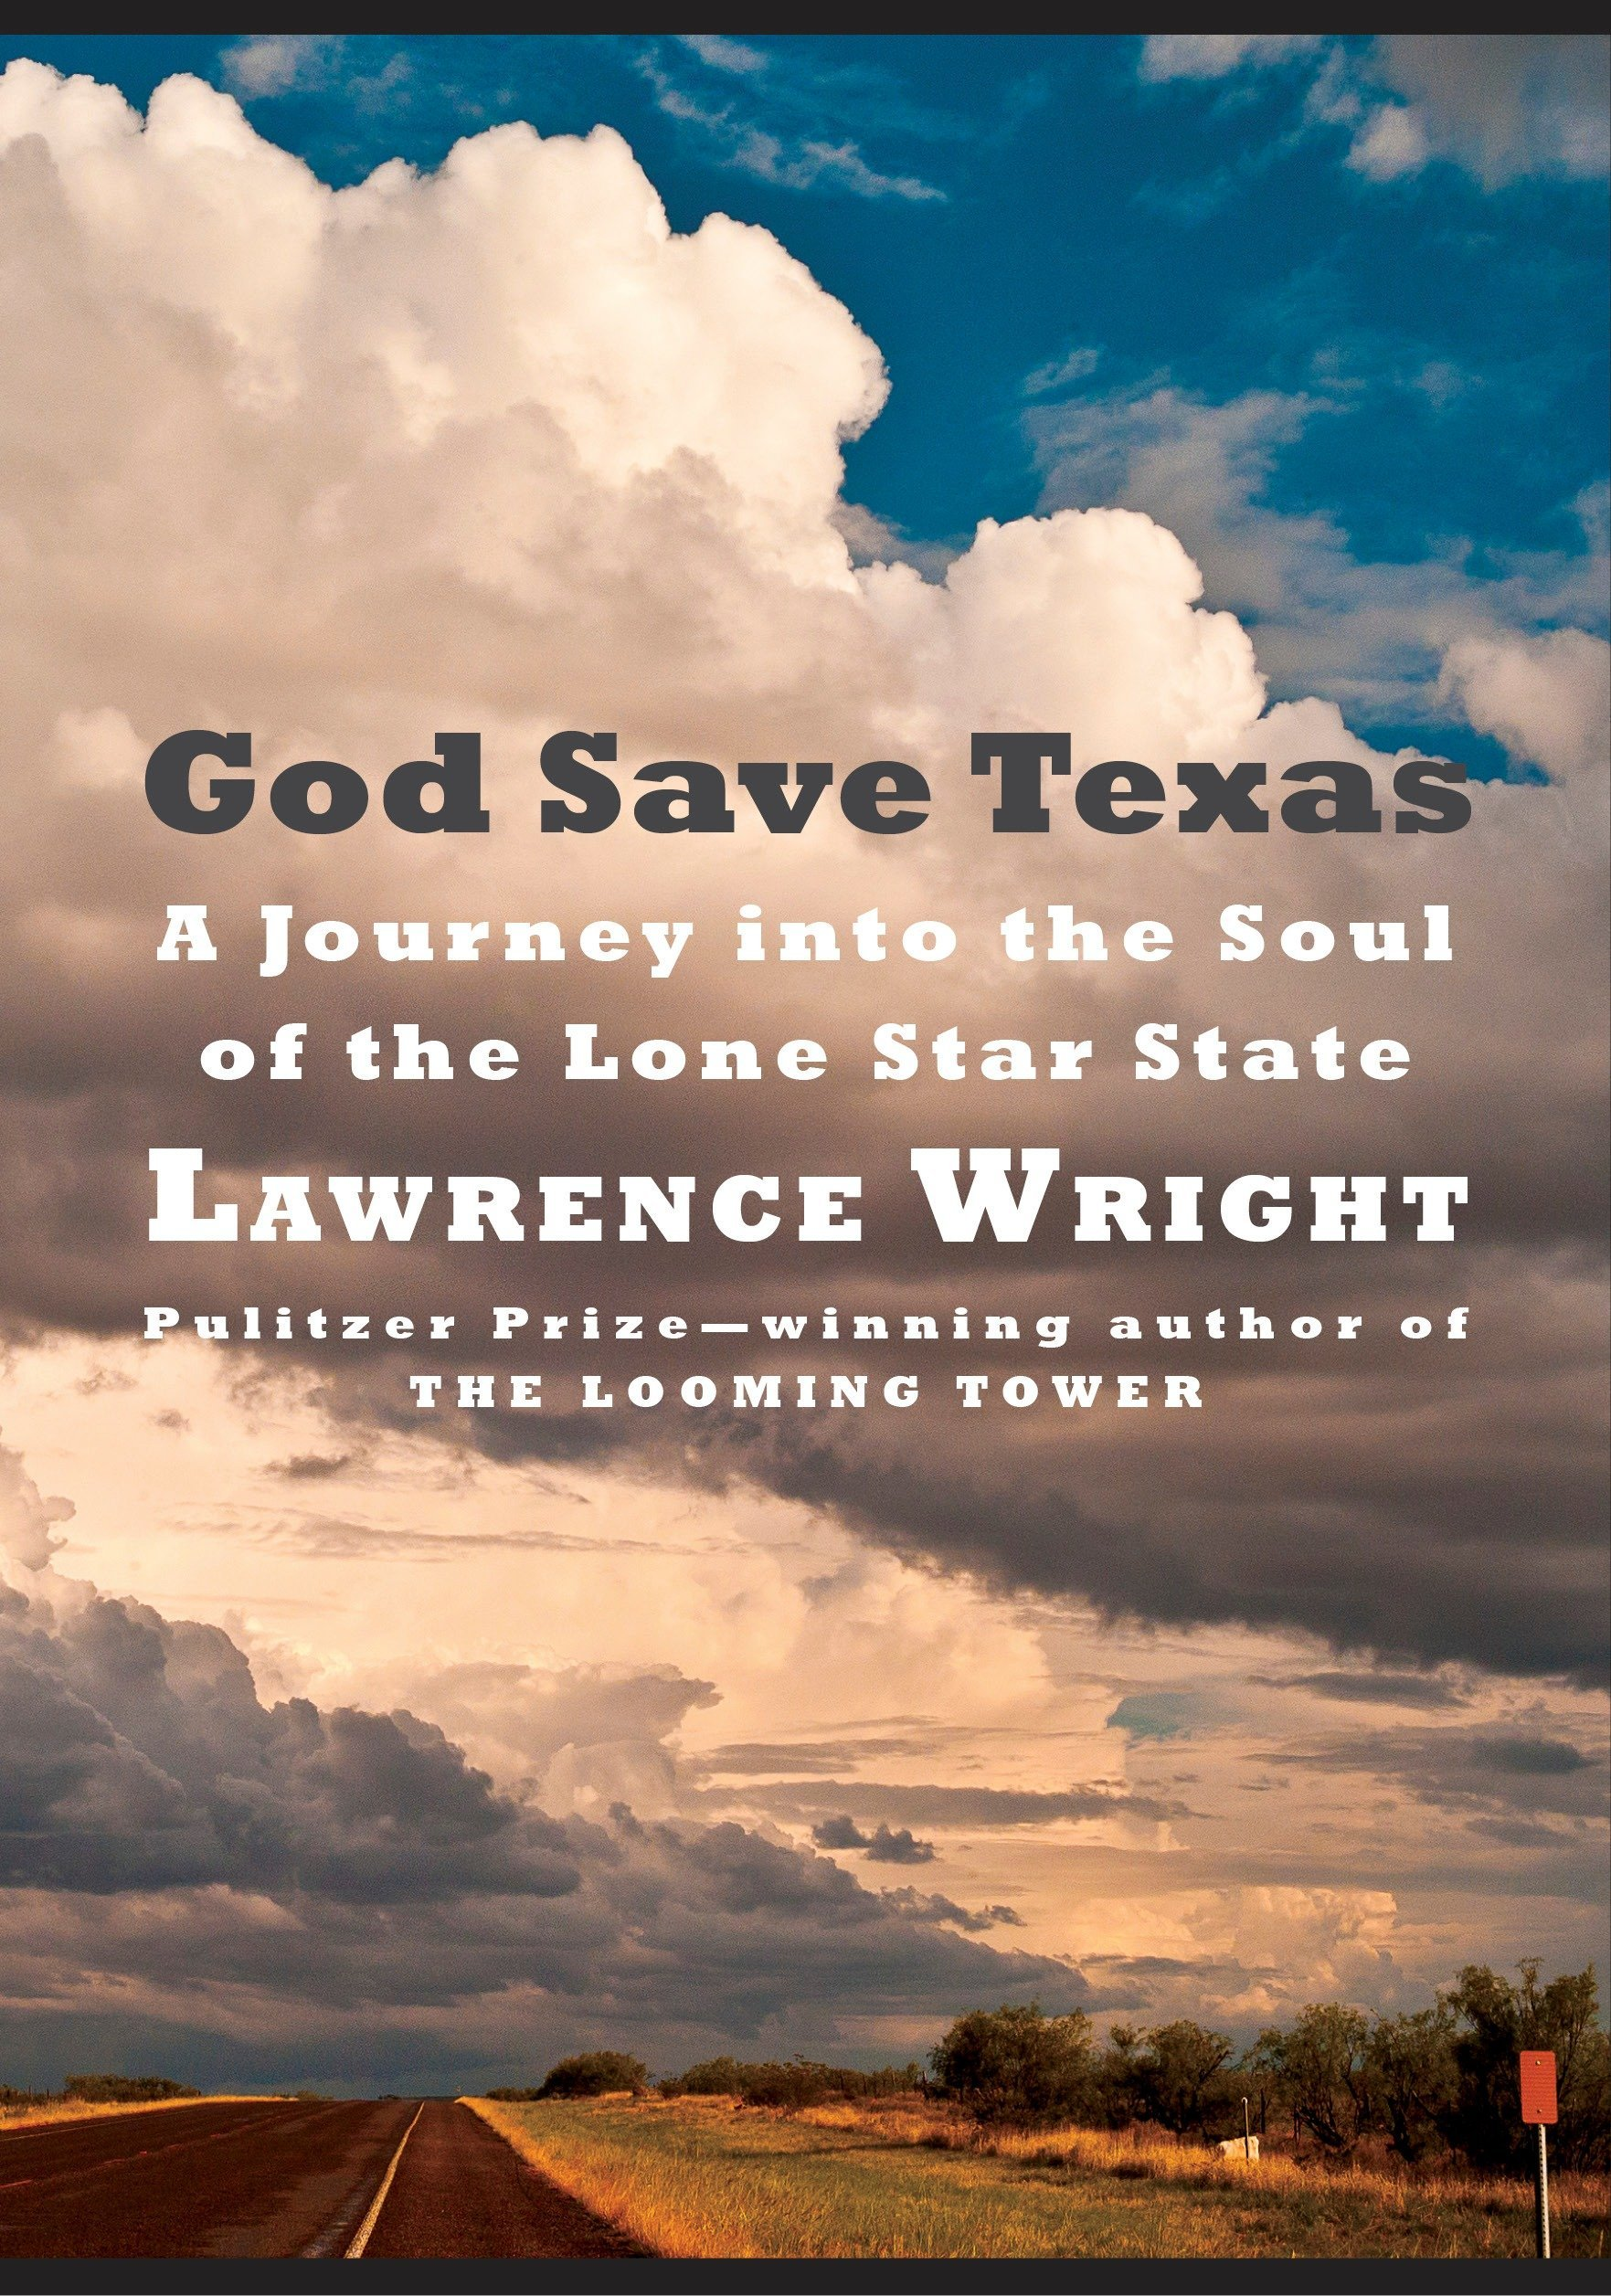 God Save Texas: A Journey into the Soul of the Lone Star State Hardcover – Deckle Edge, April 17, 2018 Lawrence Wright Knopf 0525520104 American Government - State